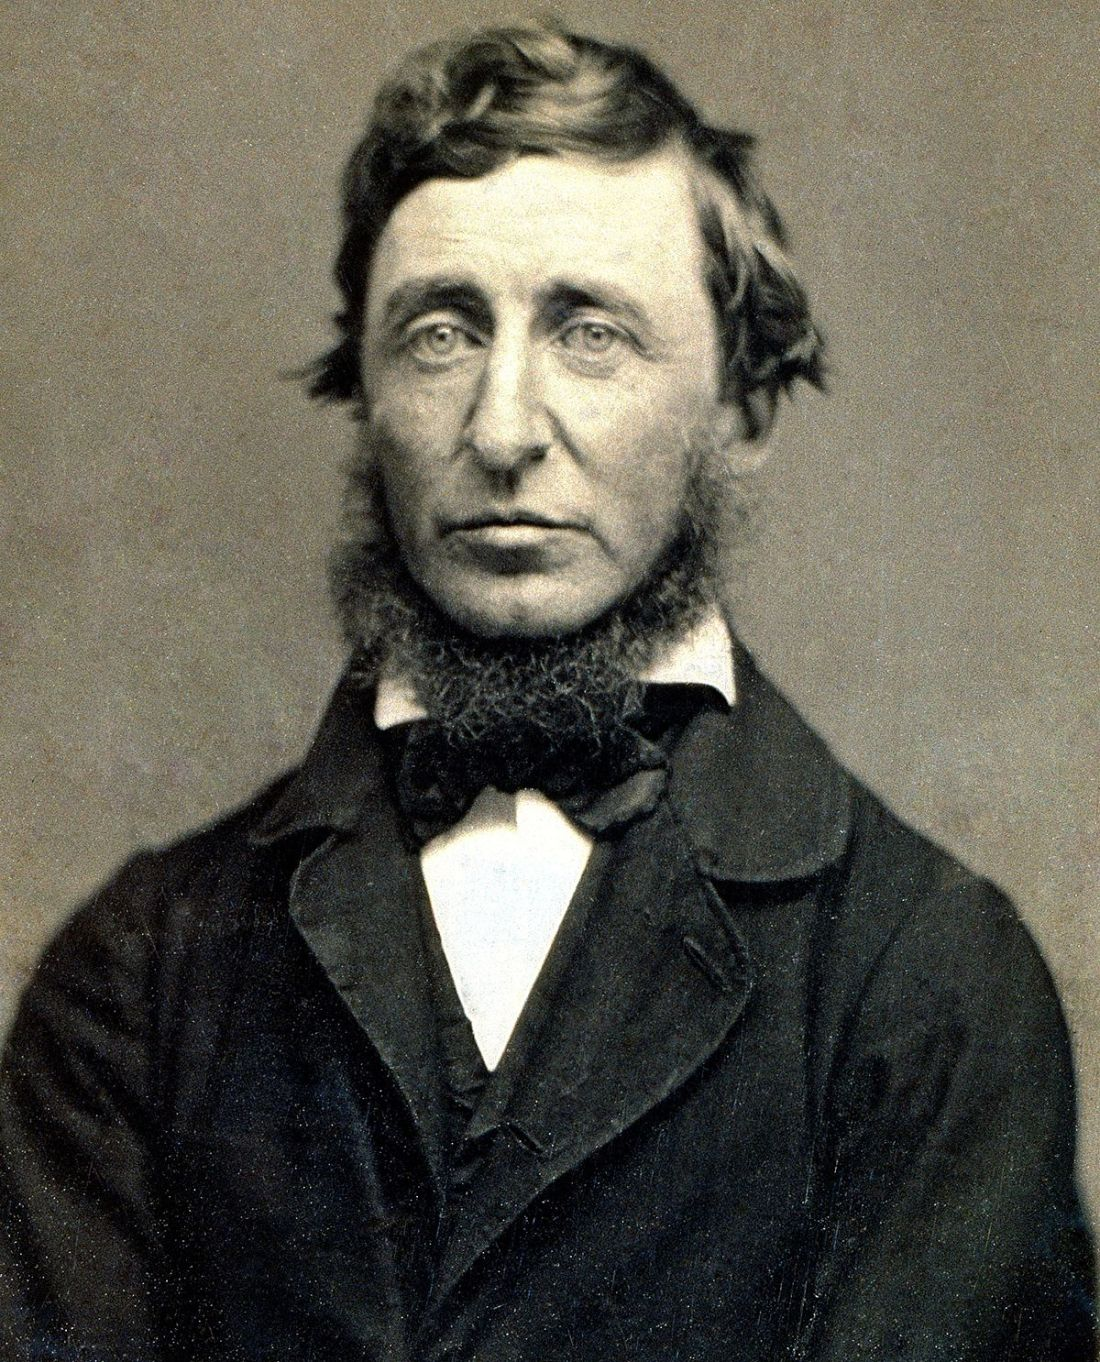 Thoreau Portrait Restored